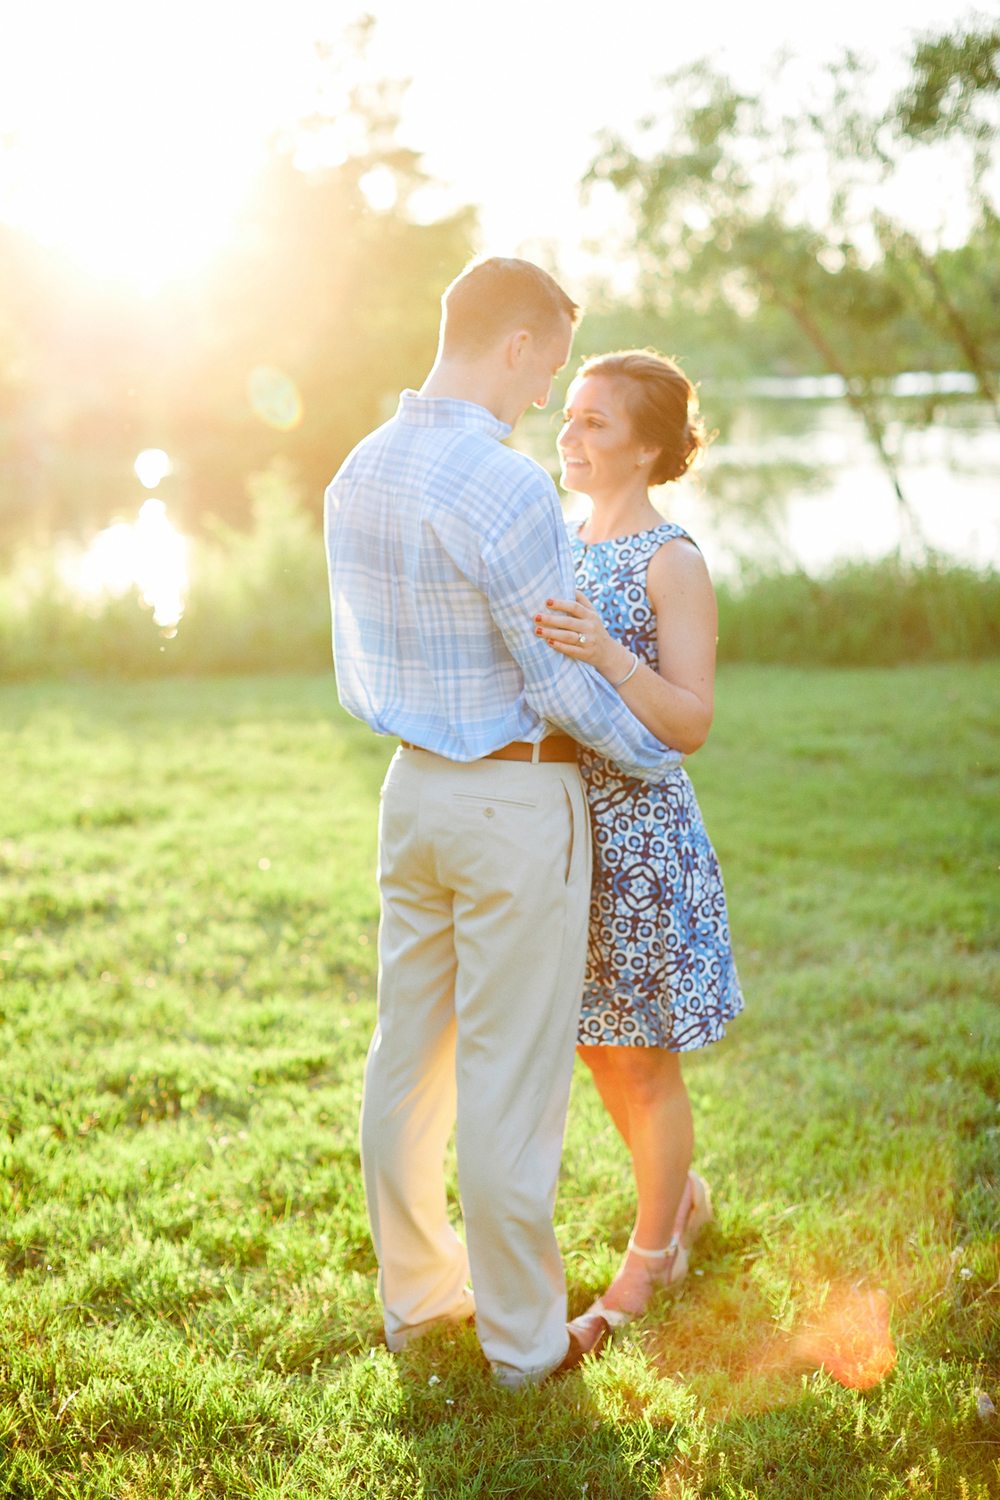 Forest Park St Louis Engagement Session in St Charles County by Oldani Photography St. Louis Wedding Photographers 23.jpg